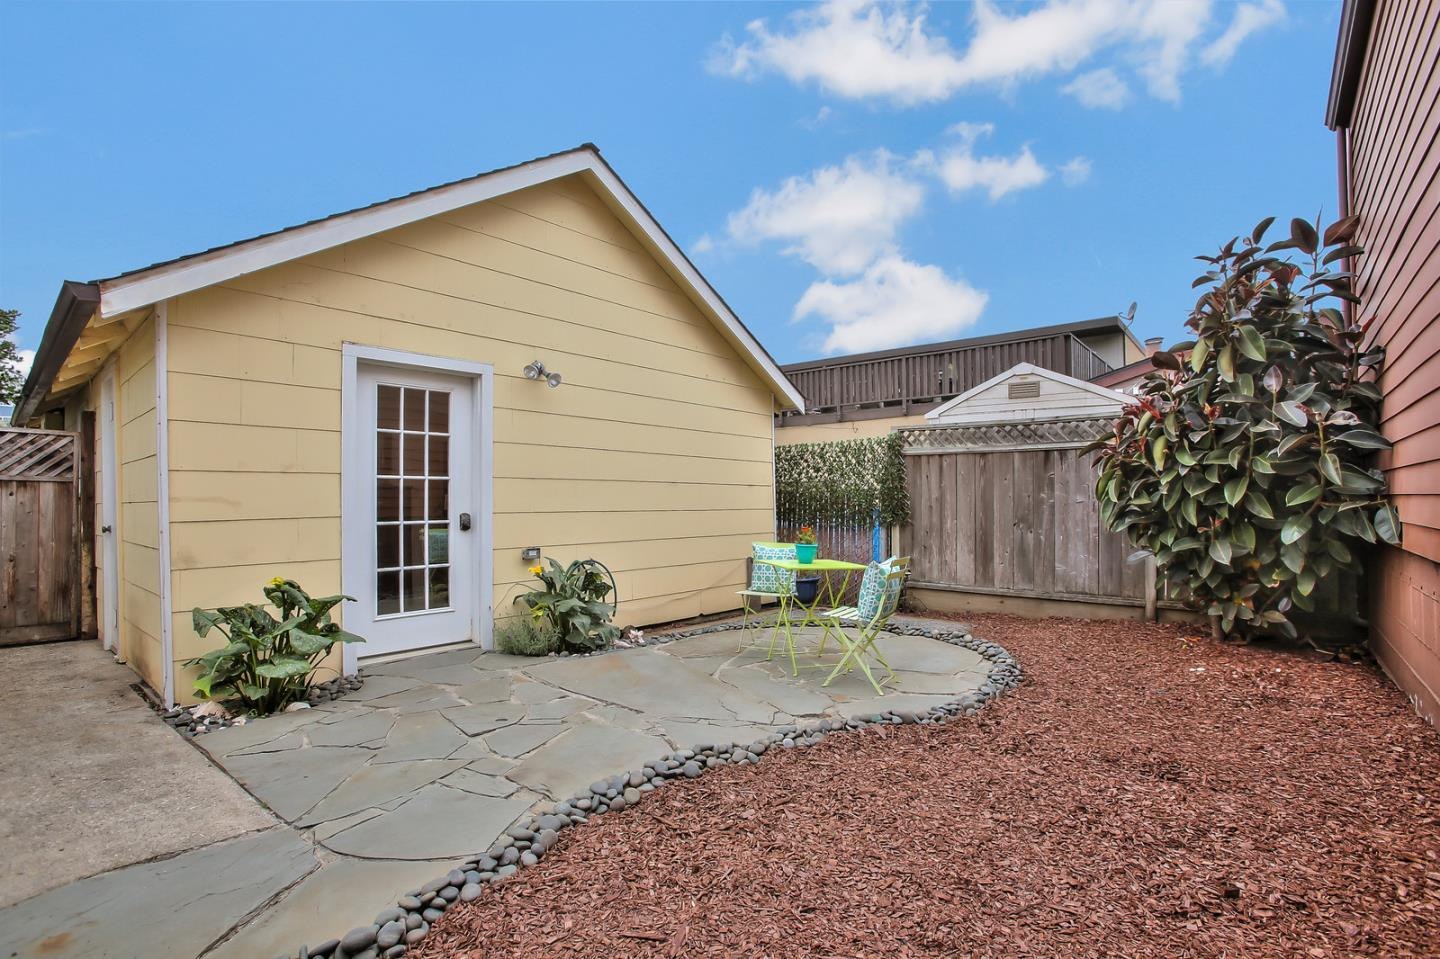 105 Santa Rosa Avenue Pacifica, CA 94044 - MLS #: ML81722267